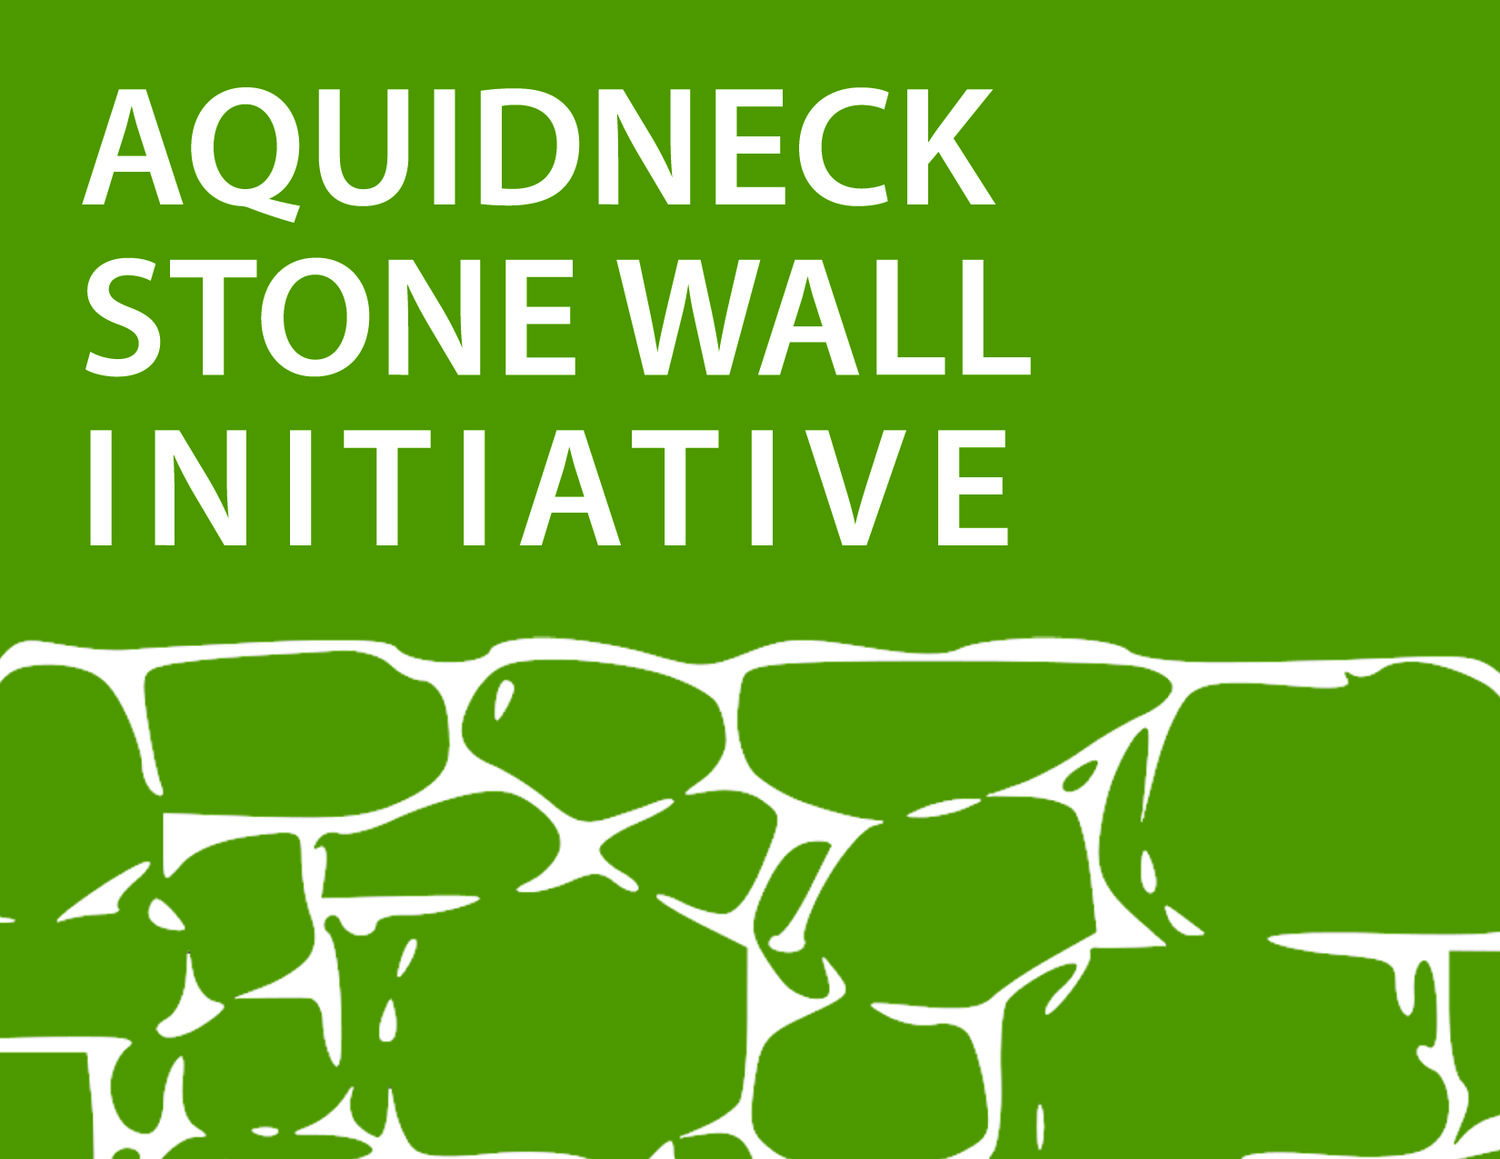 AQUIDNECK STONE WALL INITIATIVE